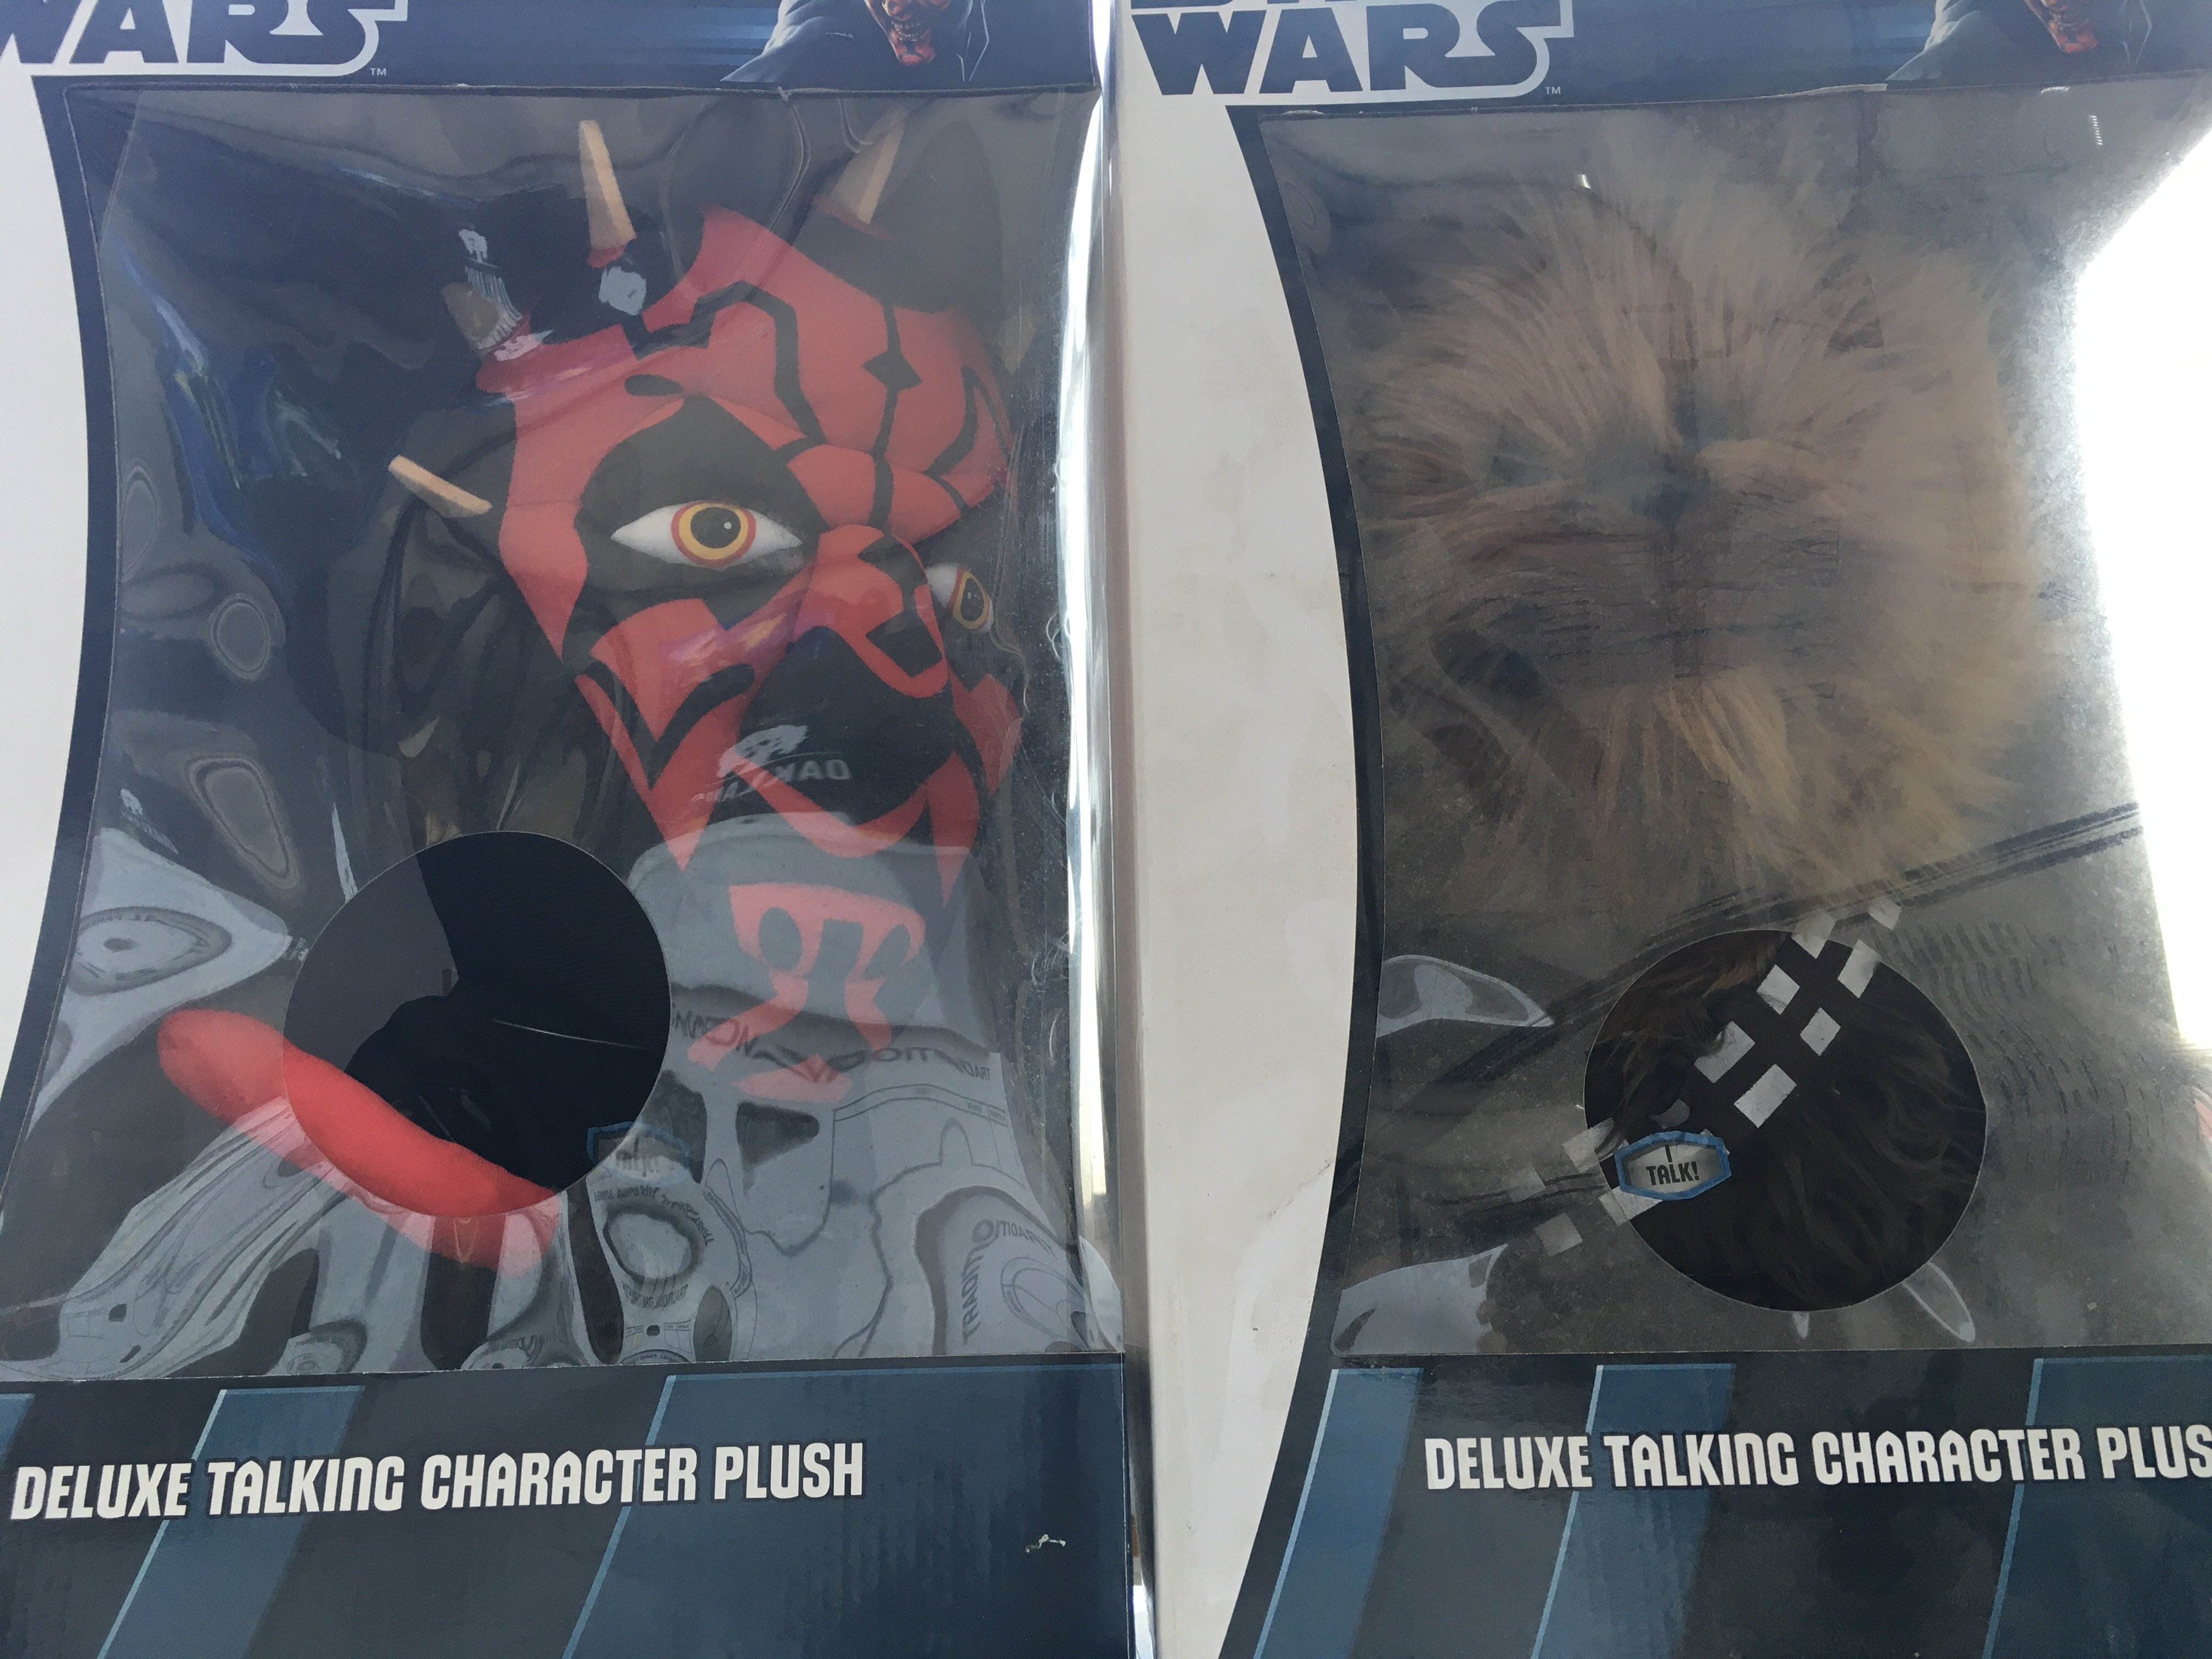 5 X Star Wars Deluxe Talking Character Plush. Incl - Image 3 of 3